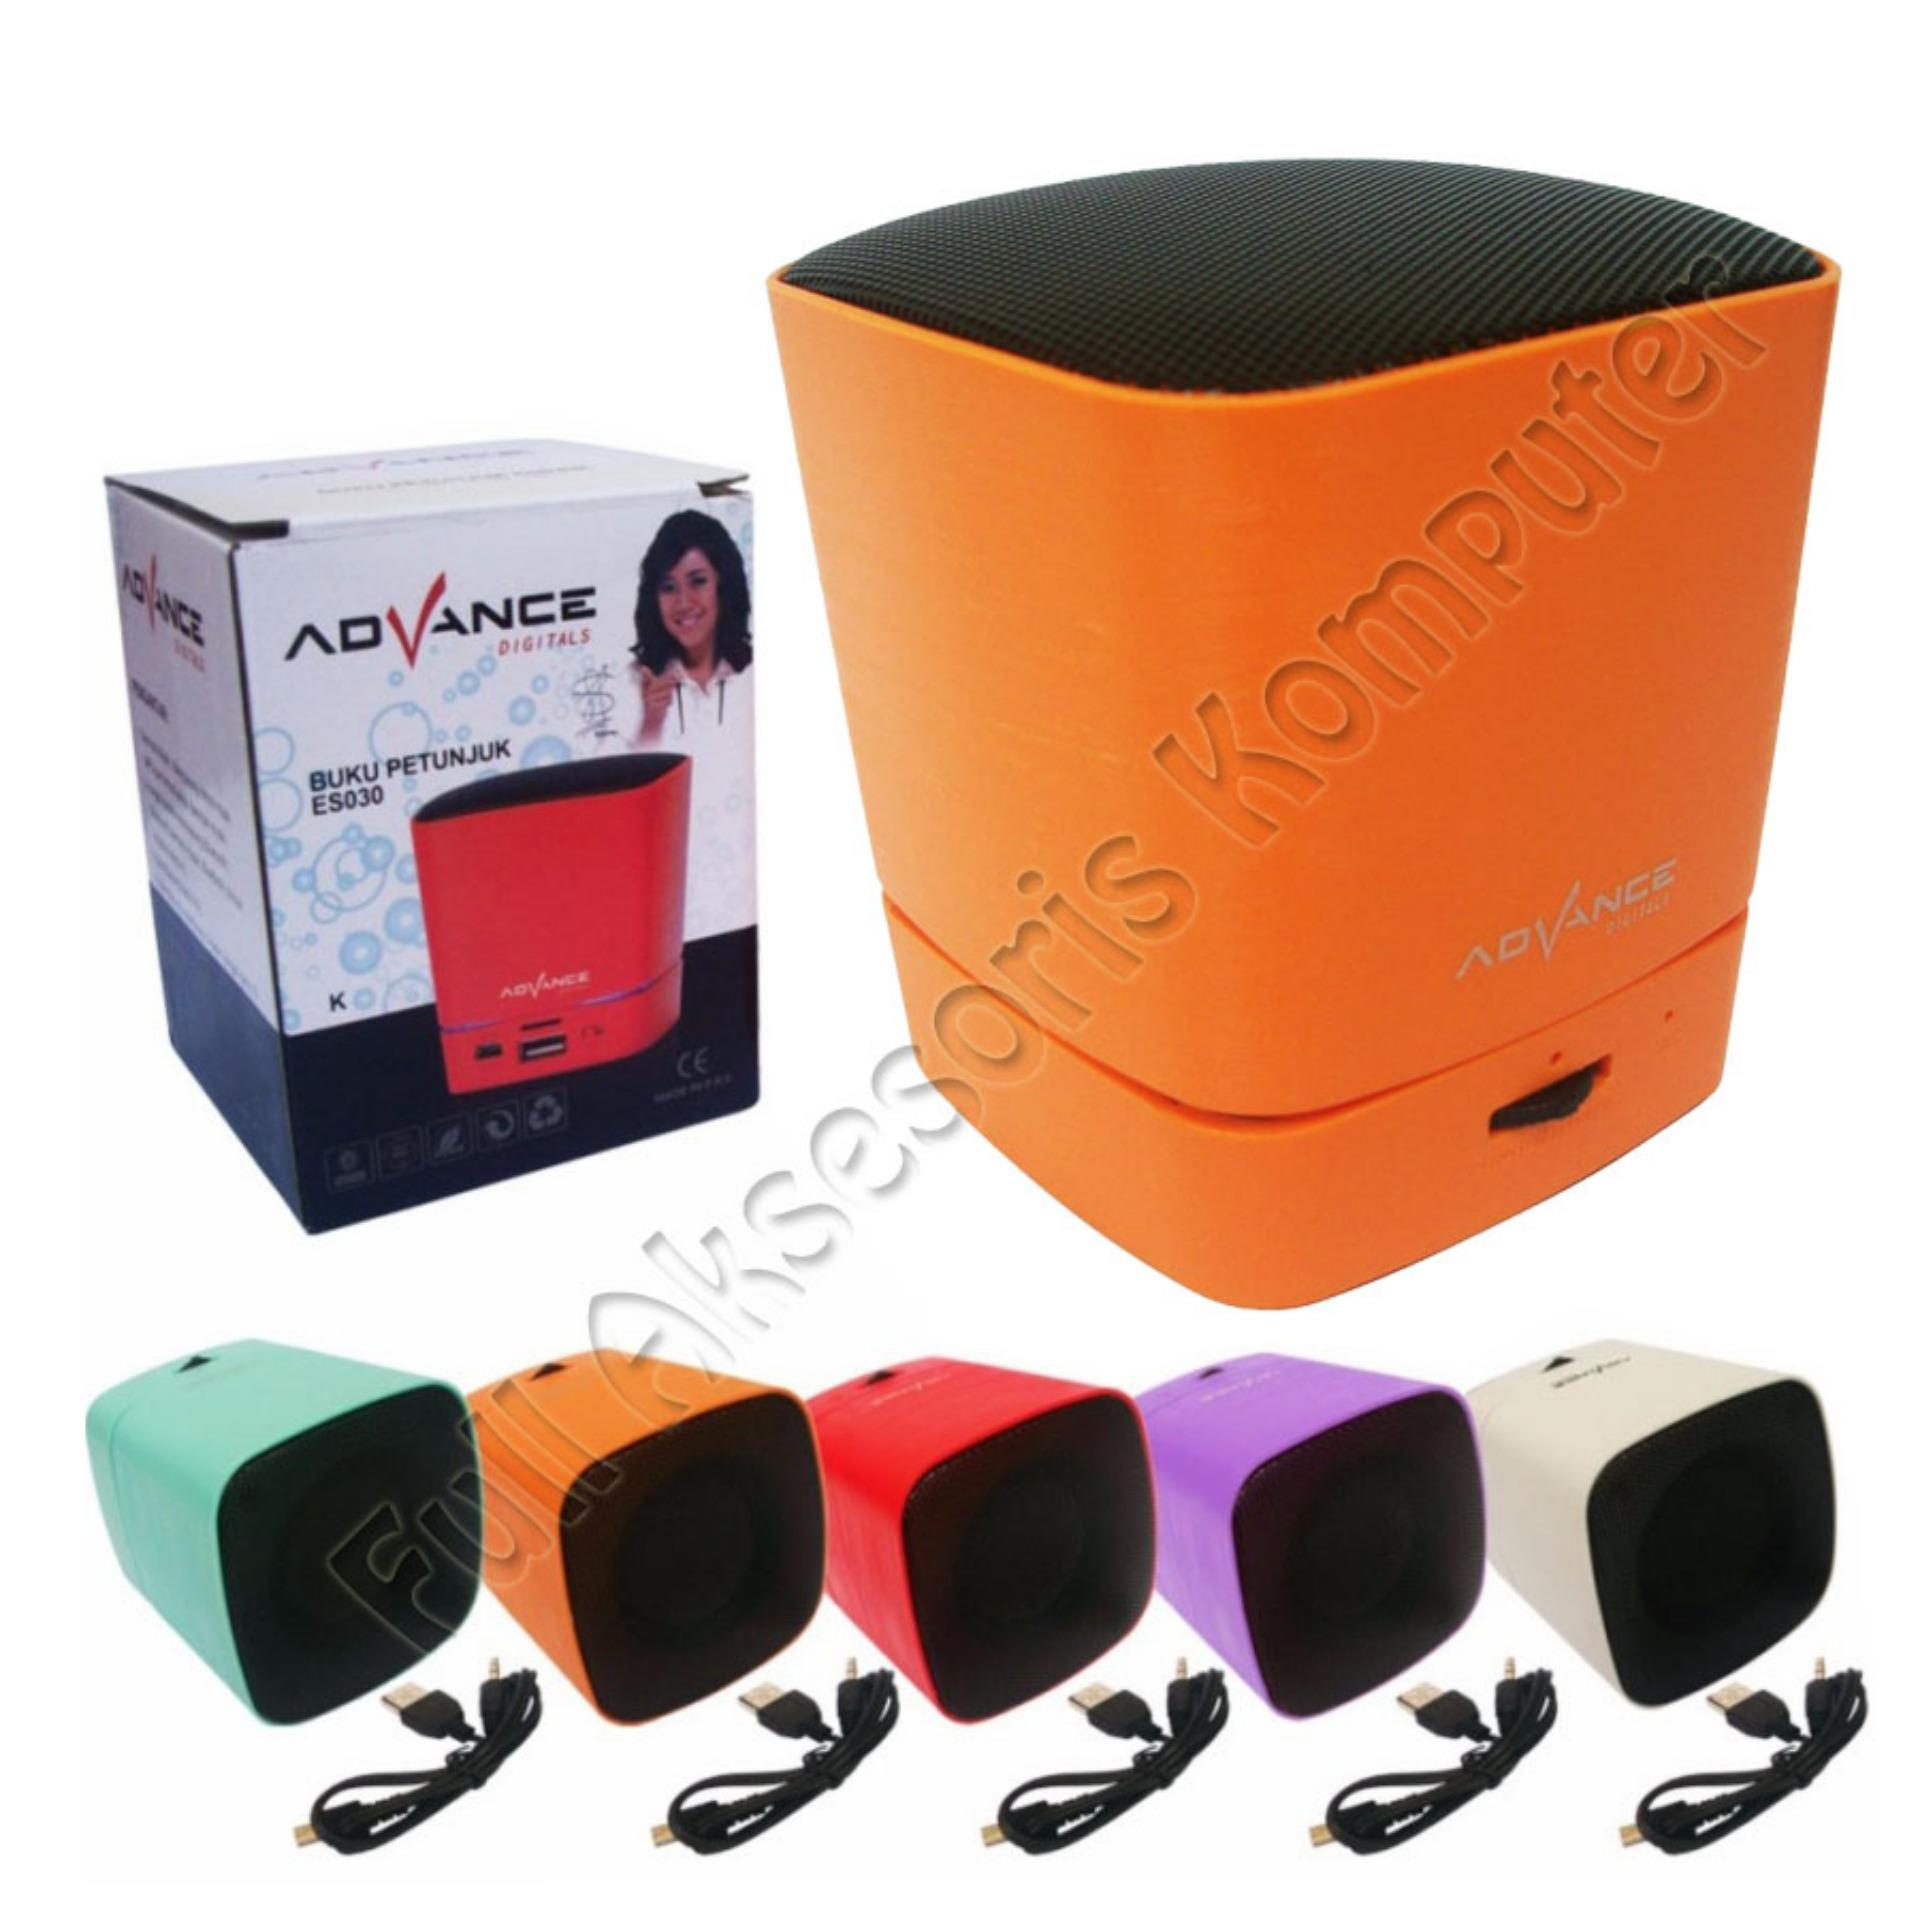 Beli Advance Mini Speaker Portable Bluetooth Es030K Orange Yang Bagus